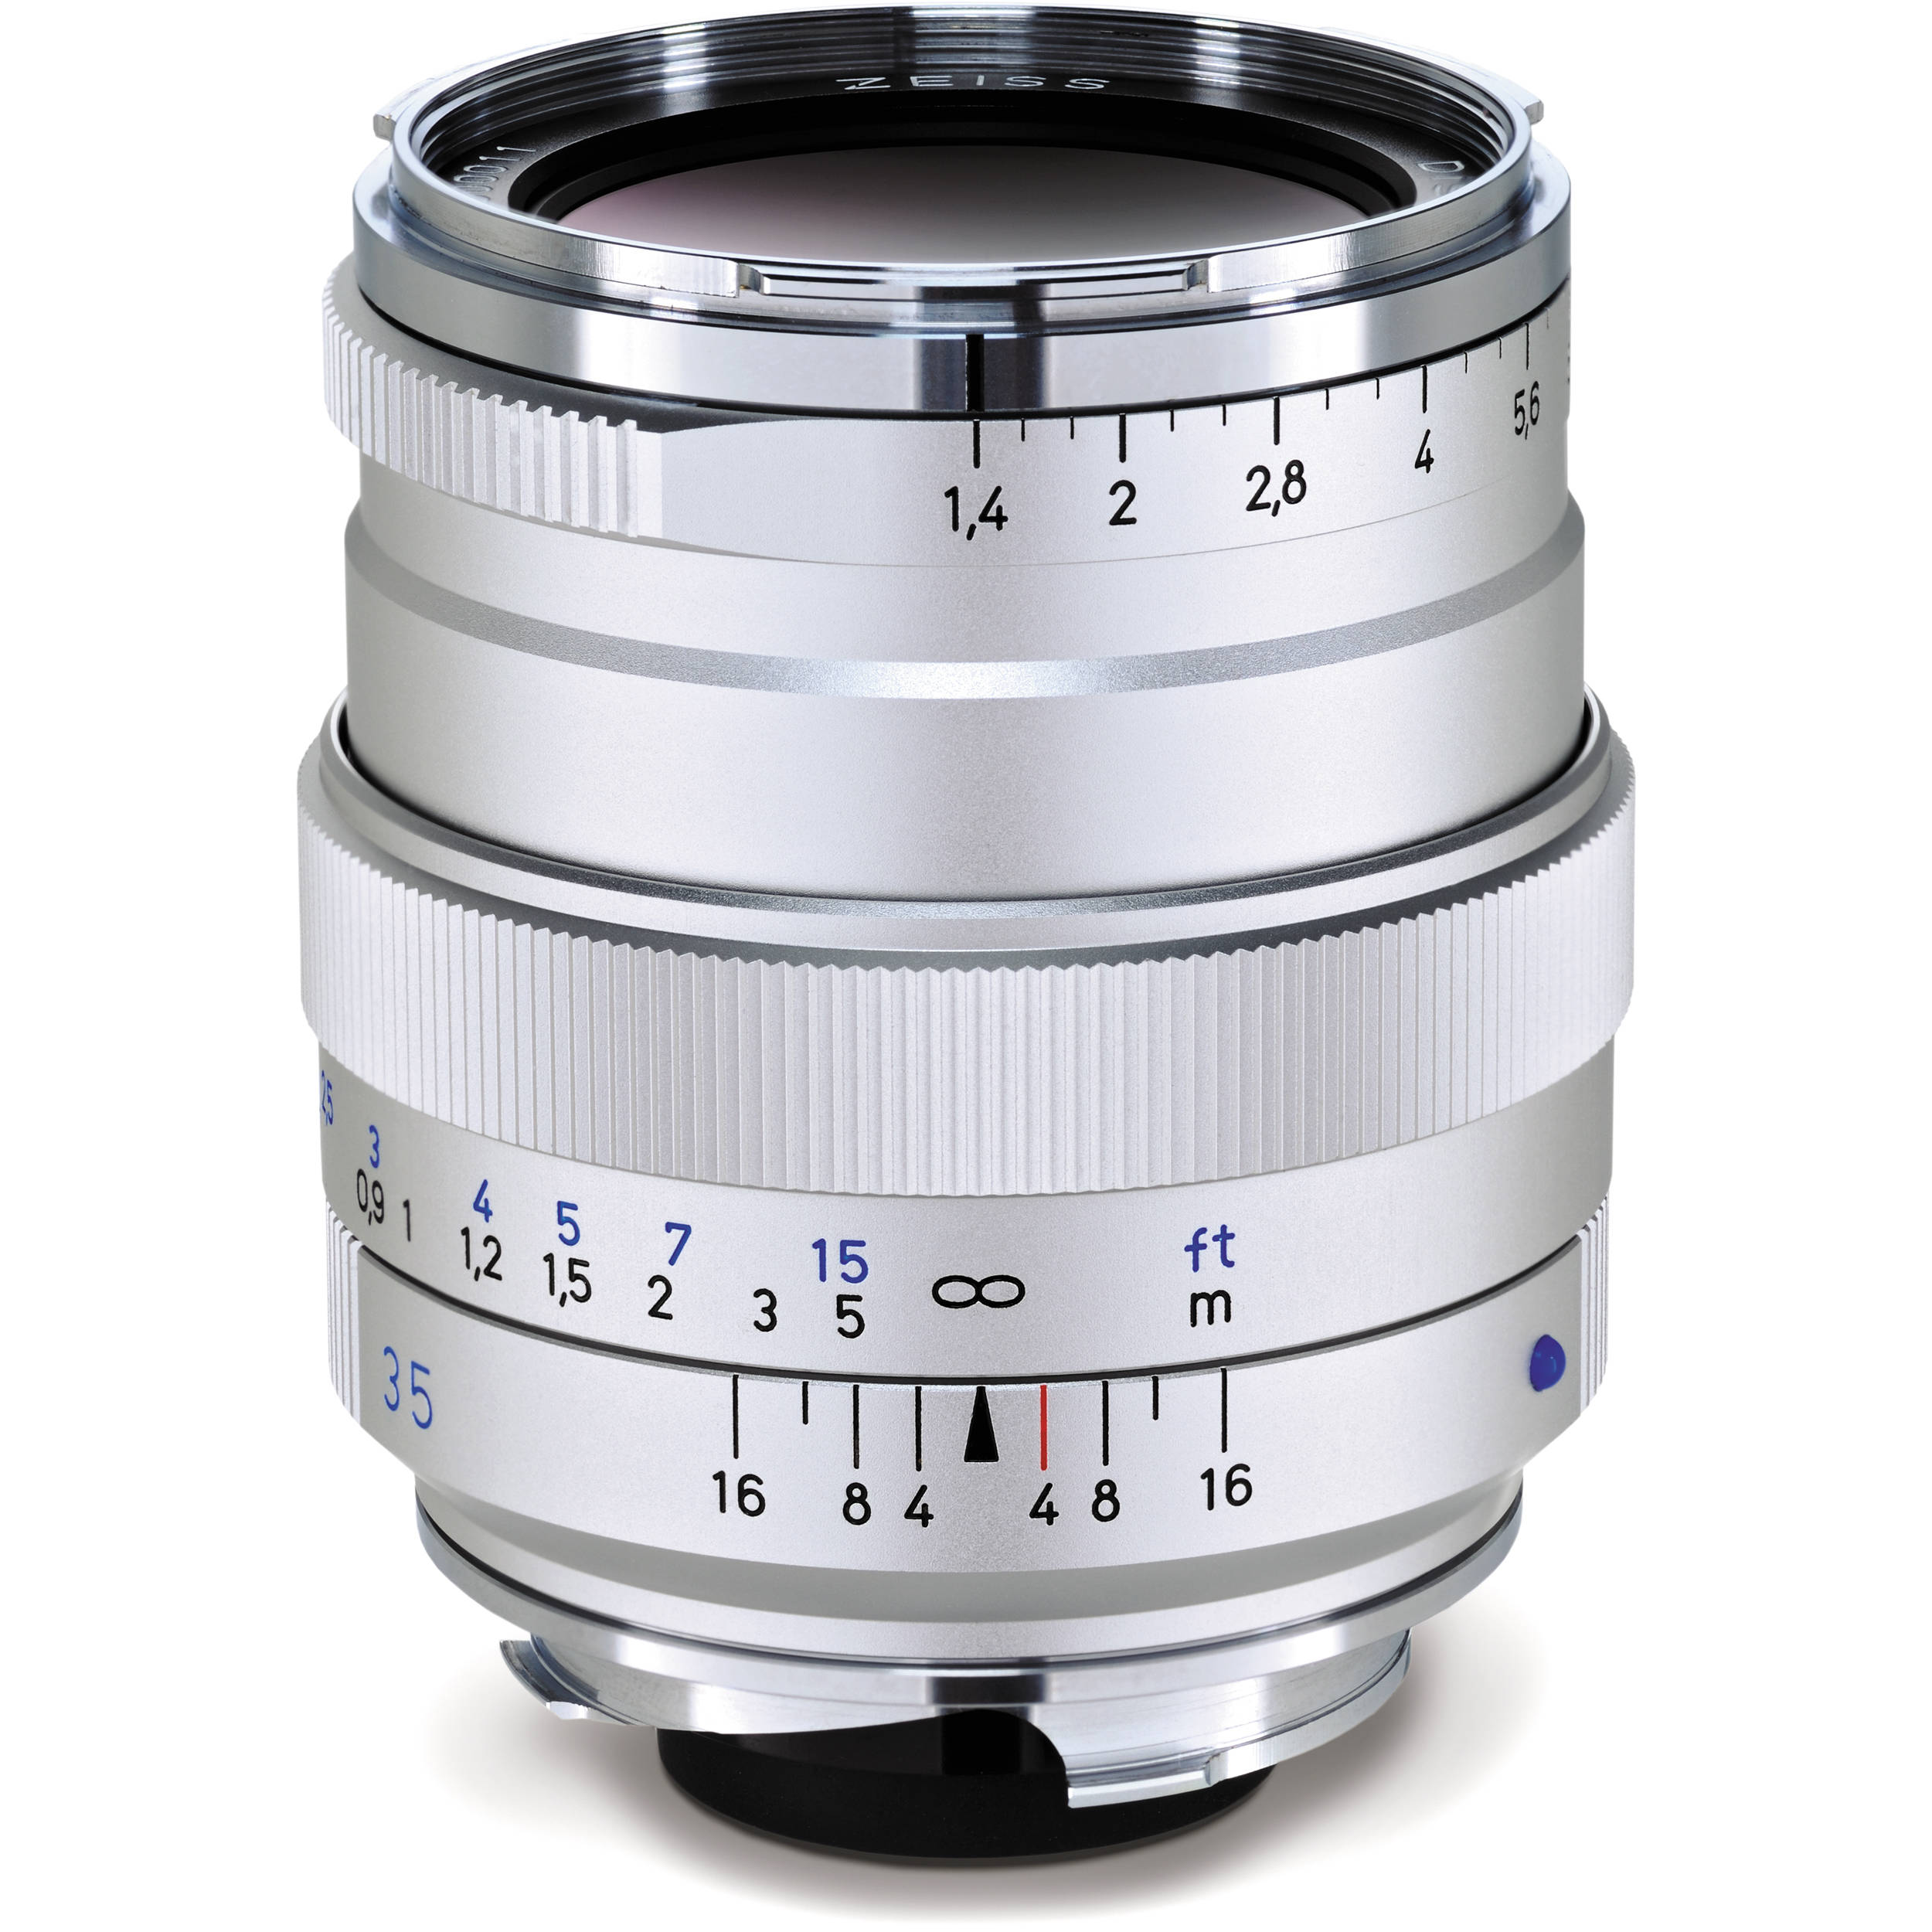 Zeiss 35 Distagon Bh Photo Video Sony T Fe 35mm F 14 Za Lens Zm Silver